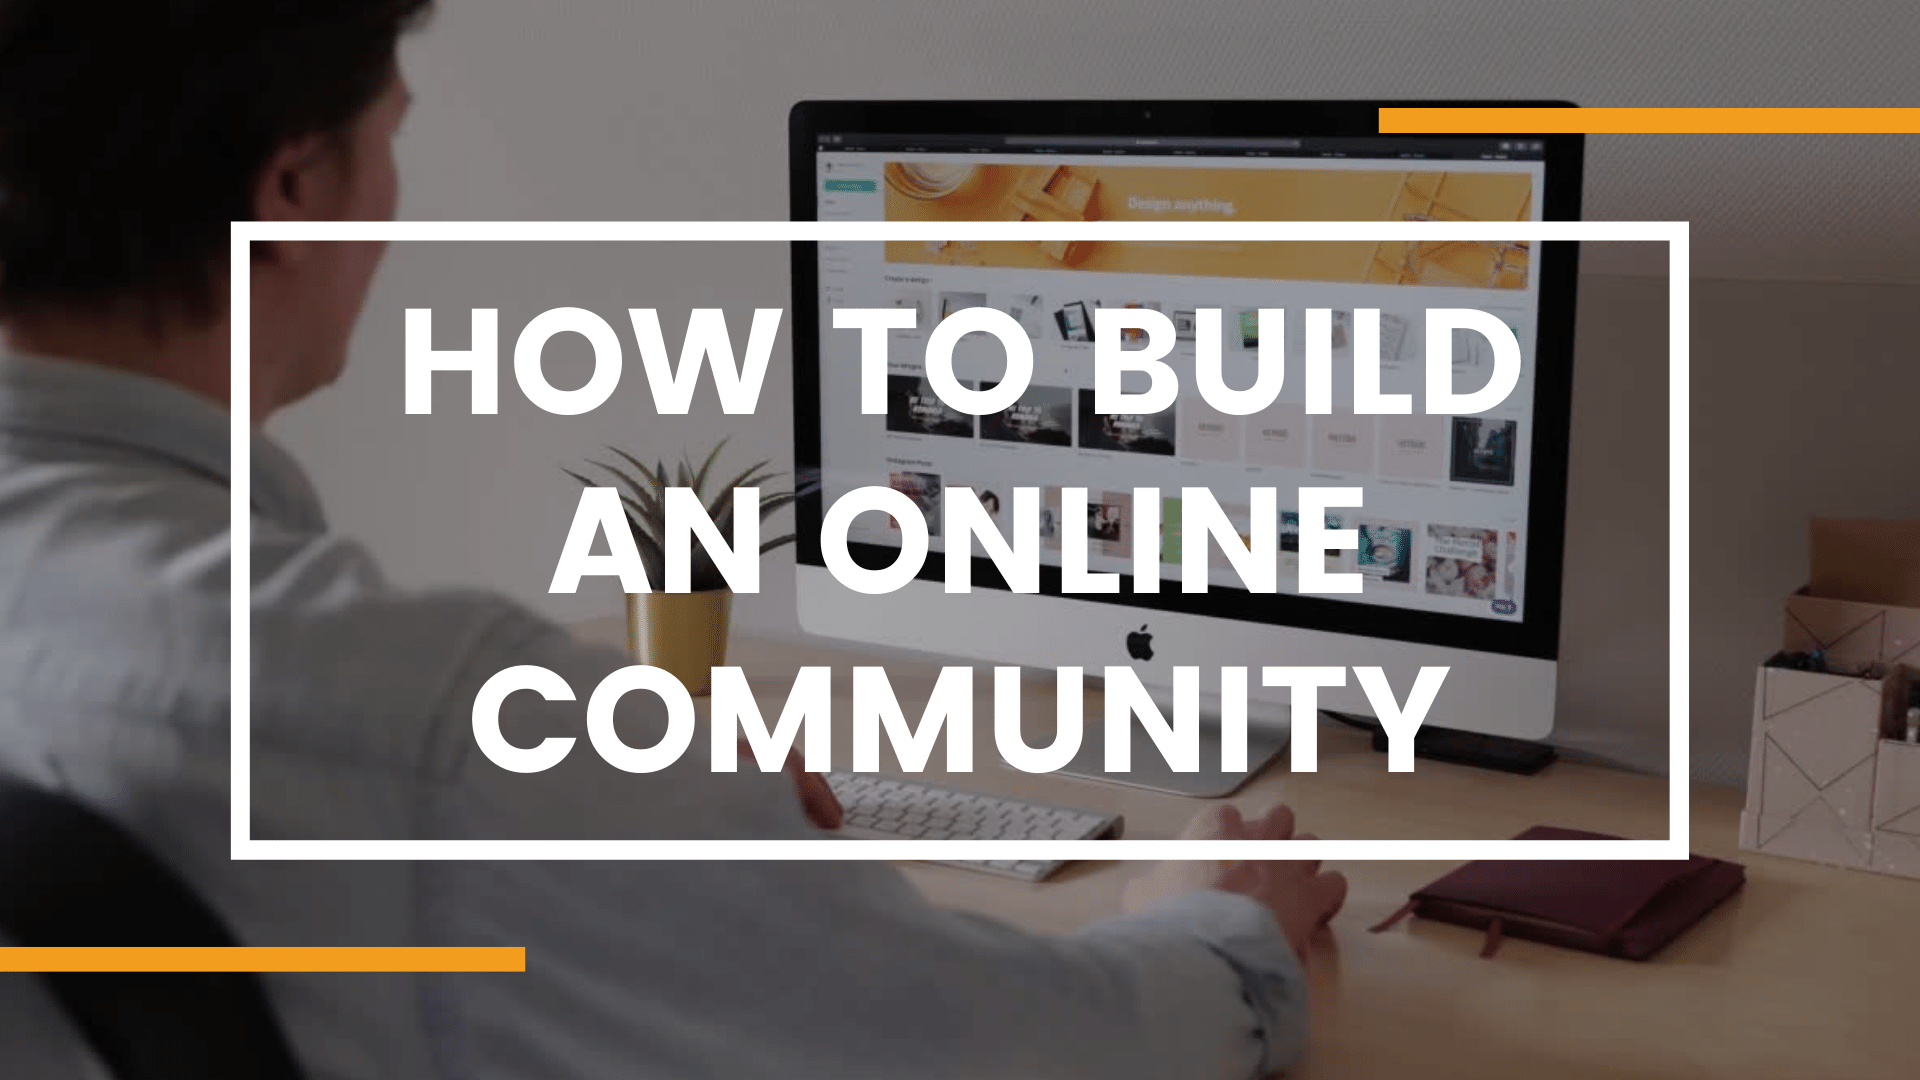 Video Channel How to Build an Online Community